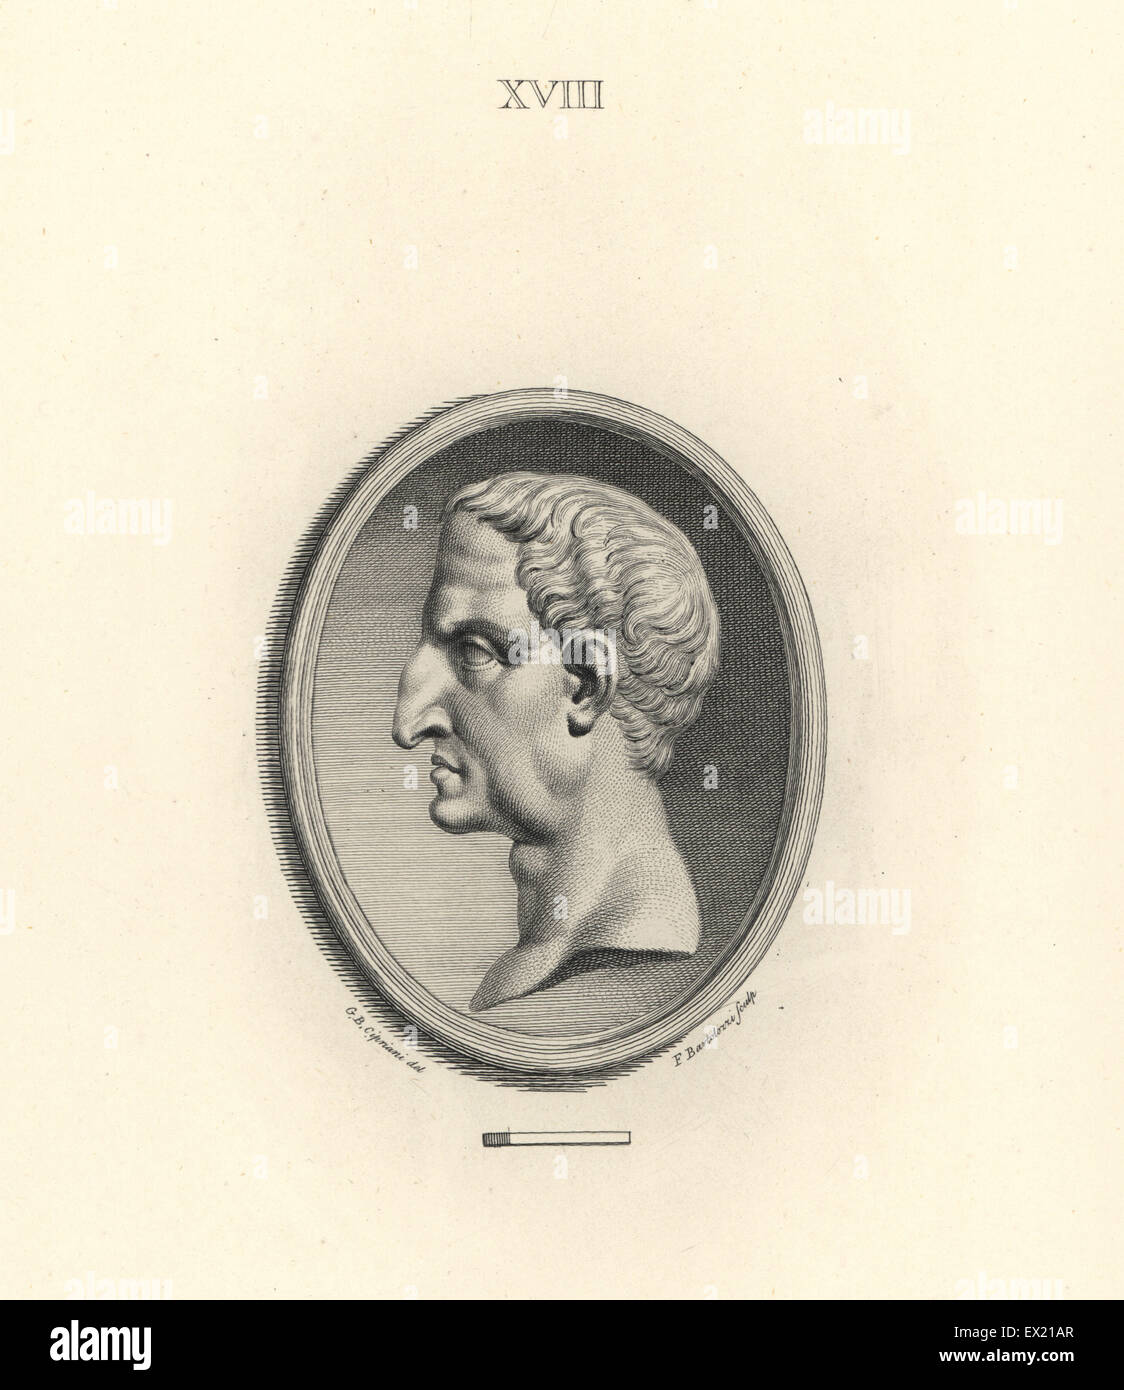 Head of Nerva, Roman Emperor. Copperplate engraving by Francesco Bartolozzi after a design by Giovanni Battista - Stock Image